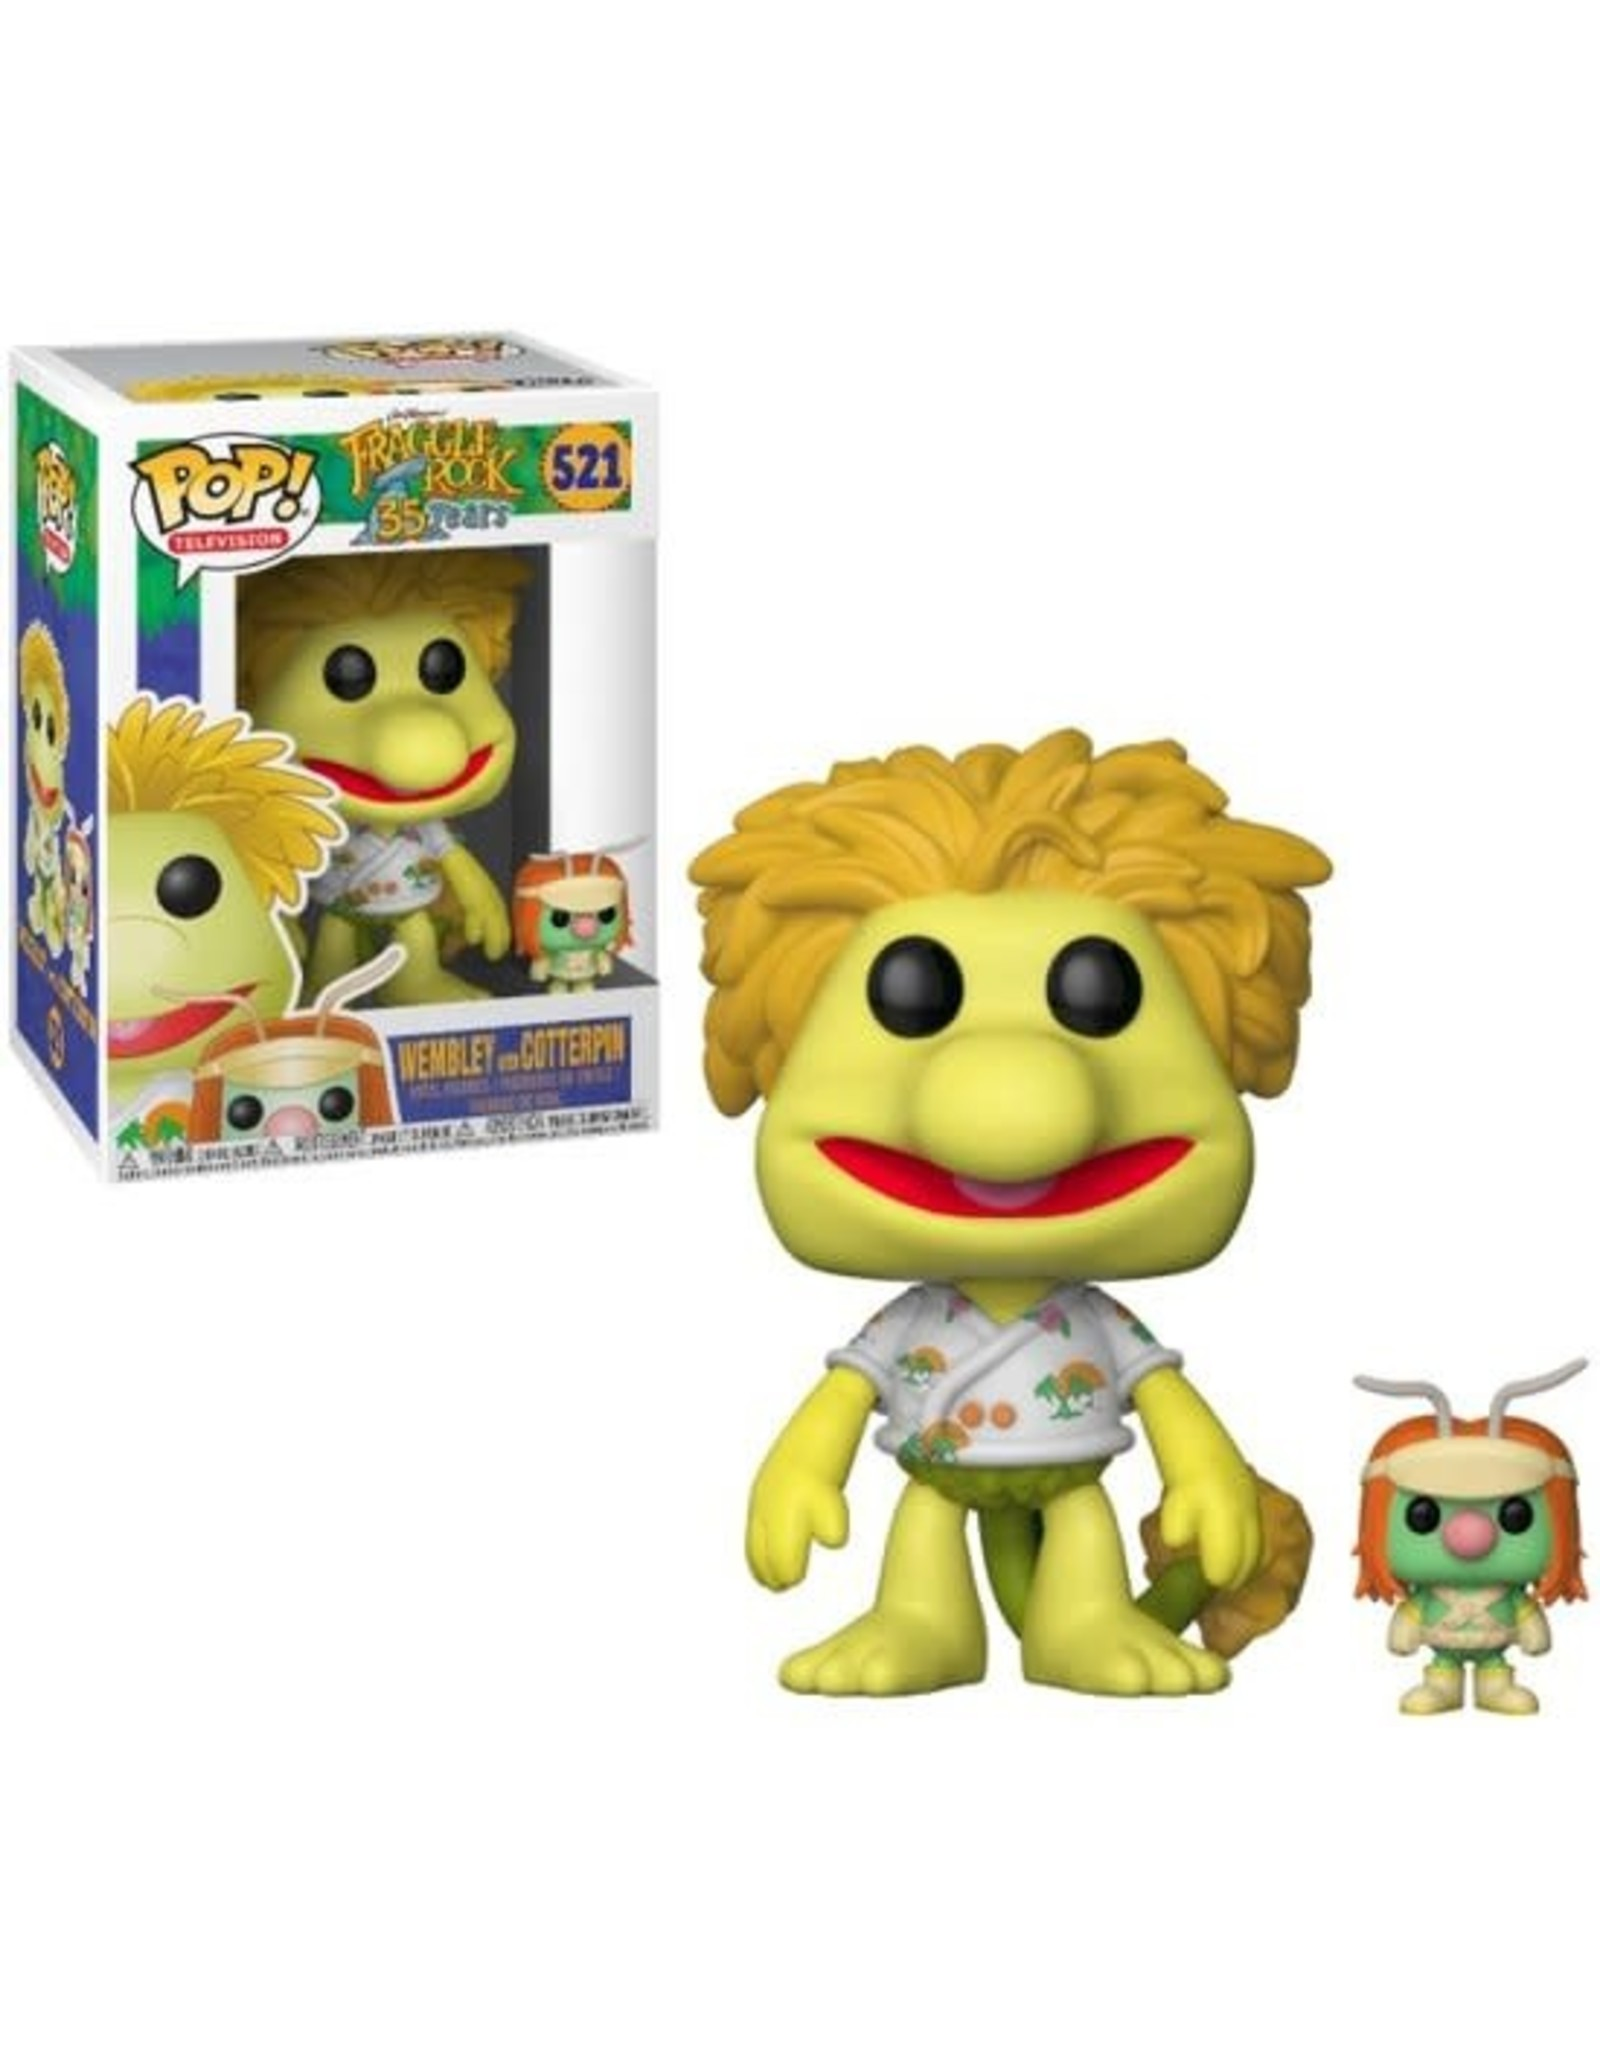 Funko Pop! Funko Pop! Television nr521 Fraggle Rock - Wembley with Cotterpin